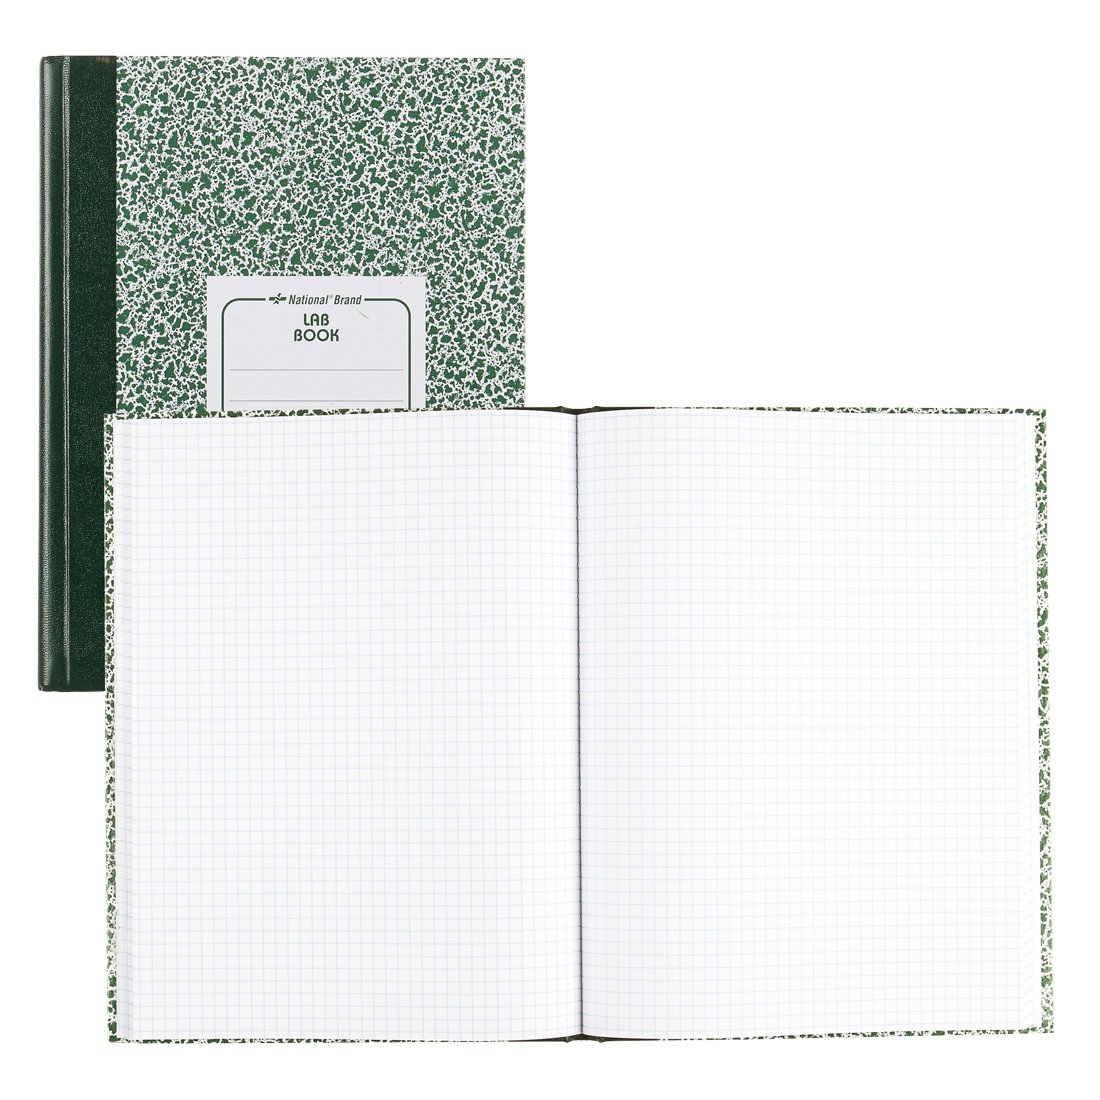 National 53110 Lab Notebook, Quadrille Rule, 10 1/8 x 7 7/8, White, 96 Sheets by Rediform